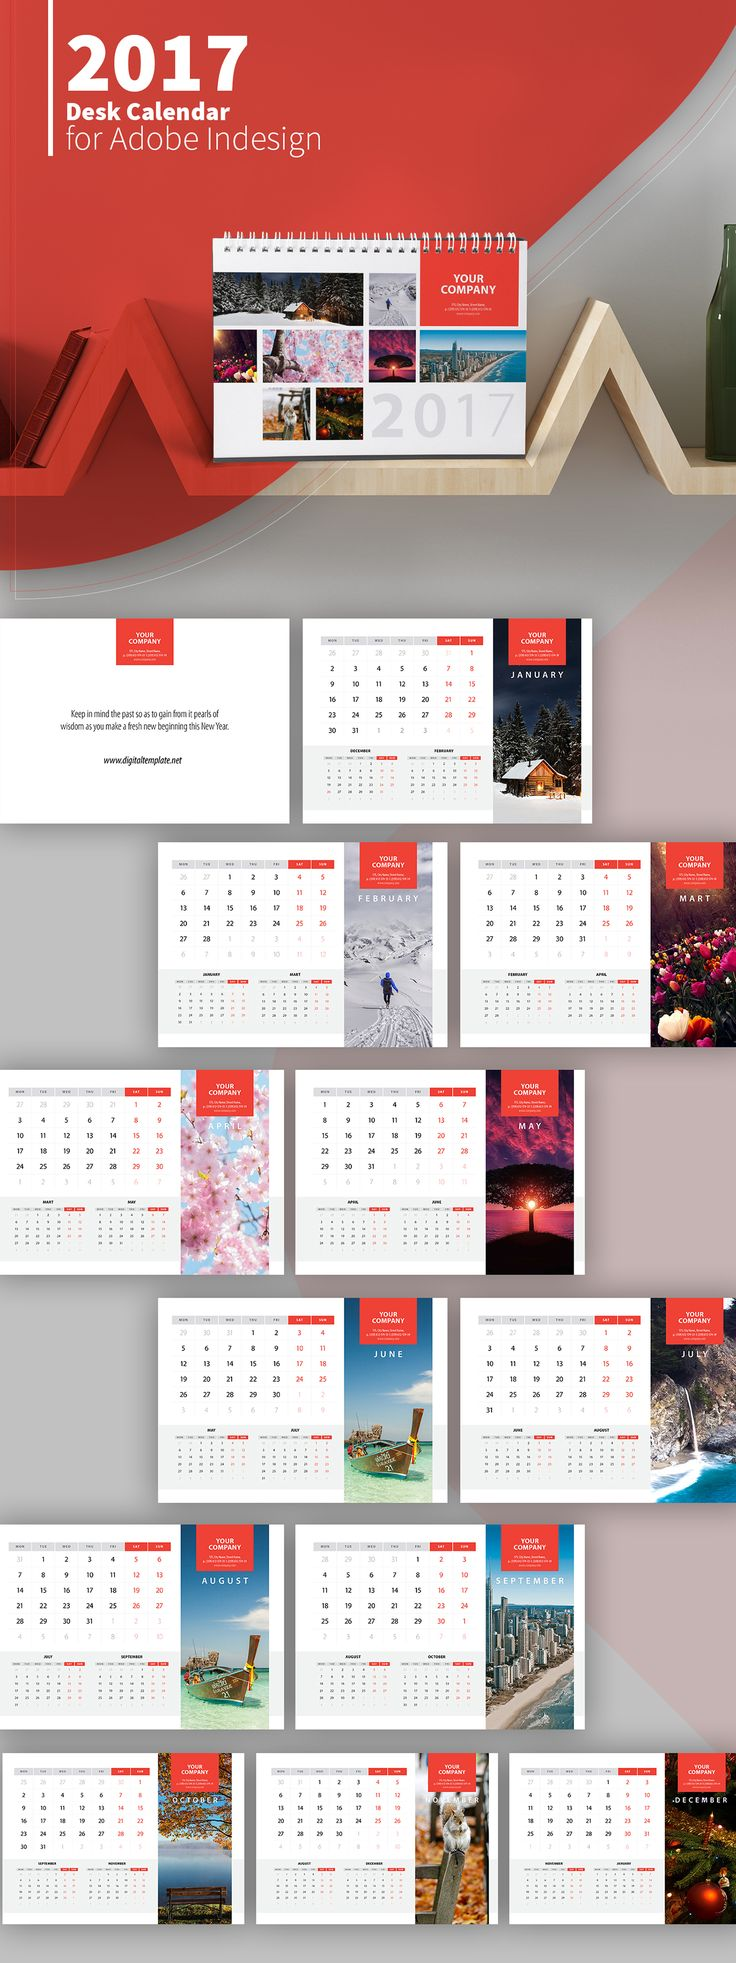 Calendar Design Layout : Best desk calendars ideas on pinterest